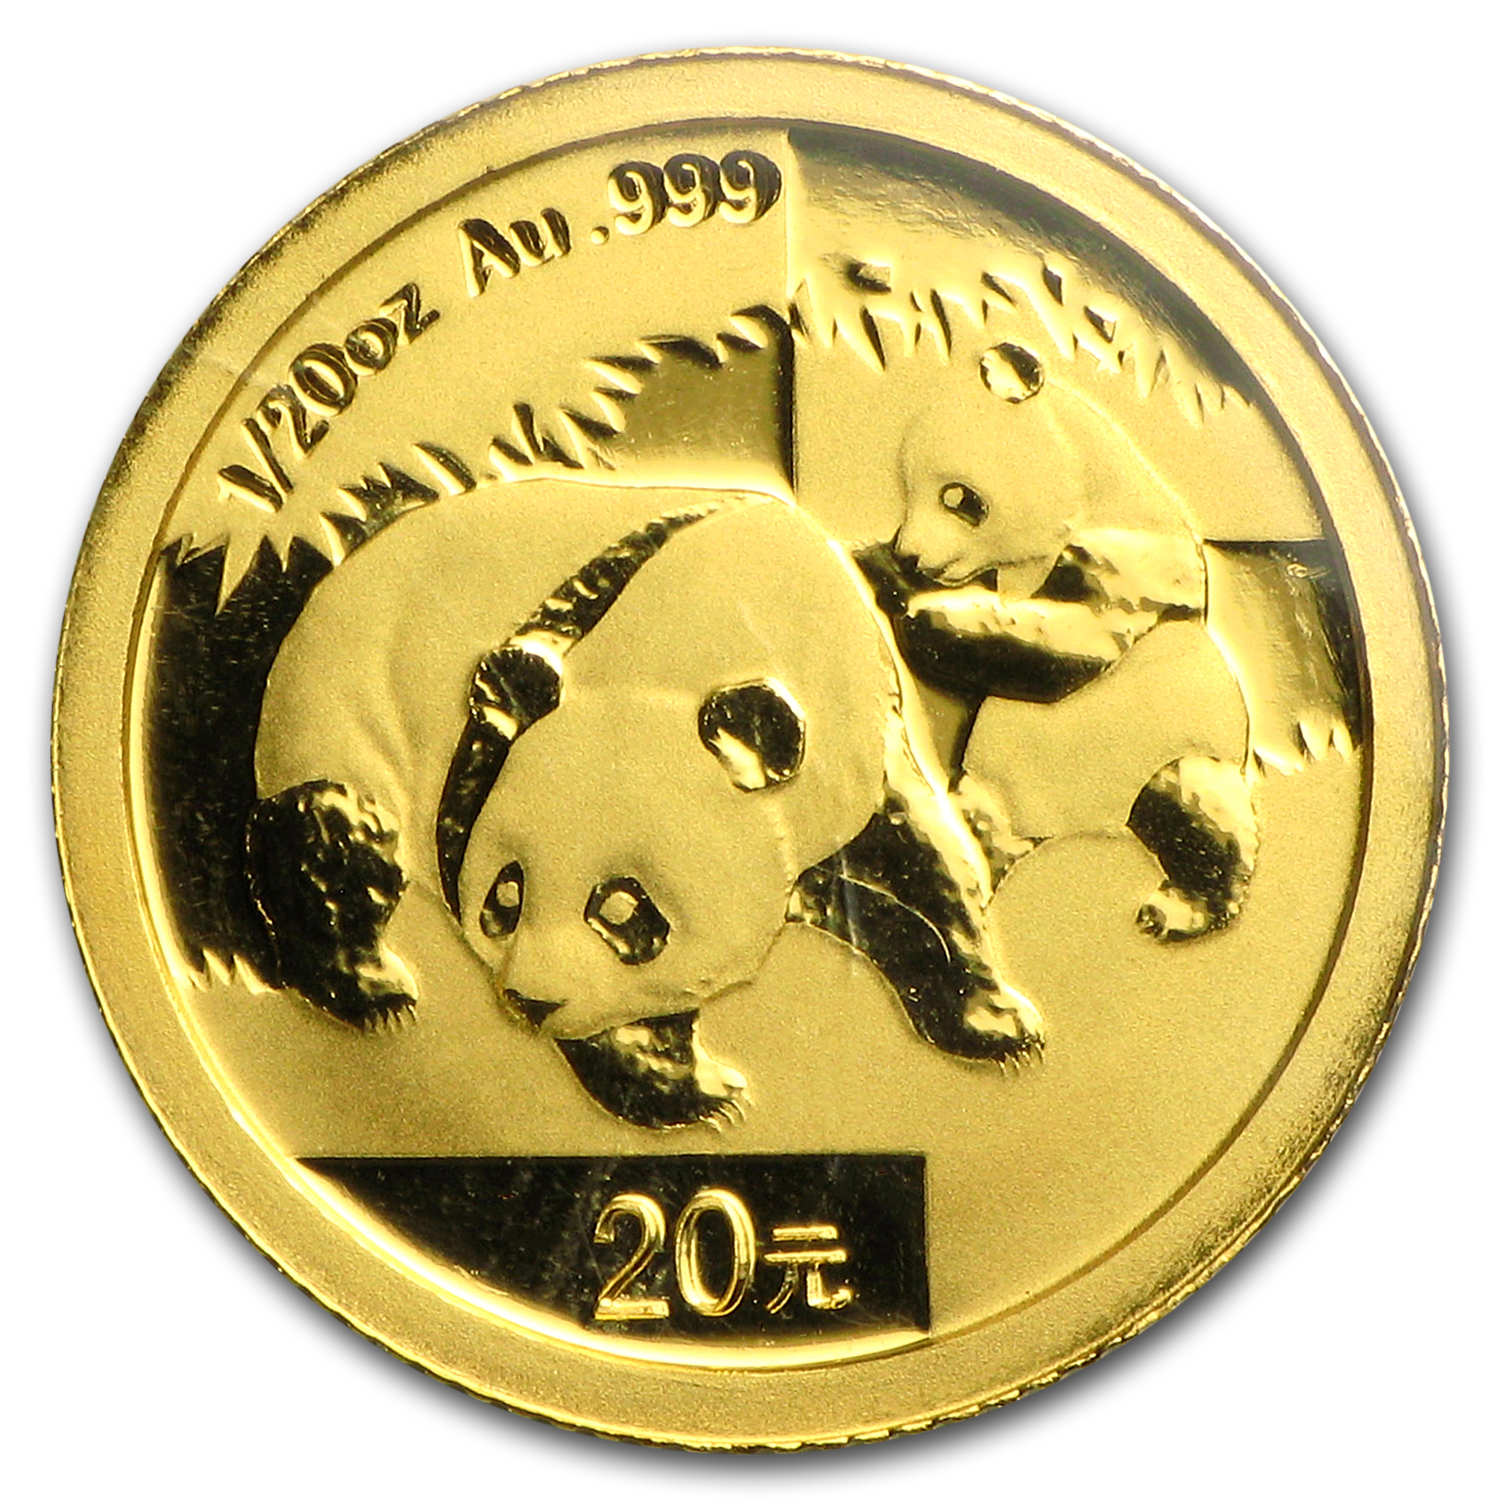 2008 China 1/20 oz Gold Panda BU (Sealed)